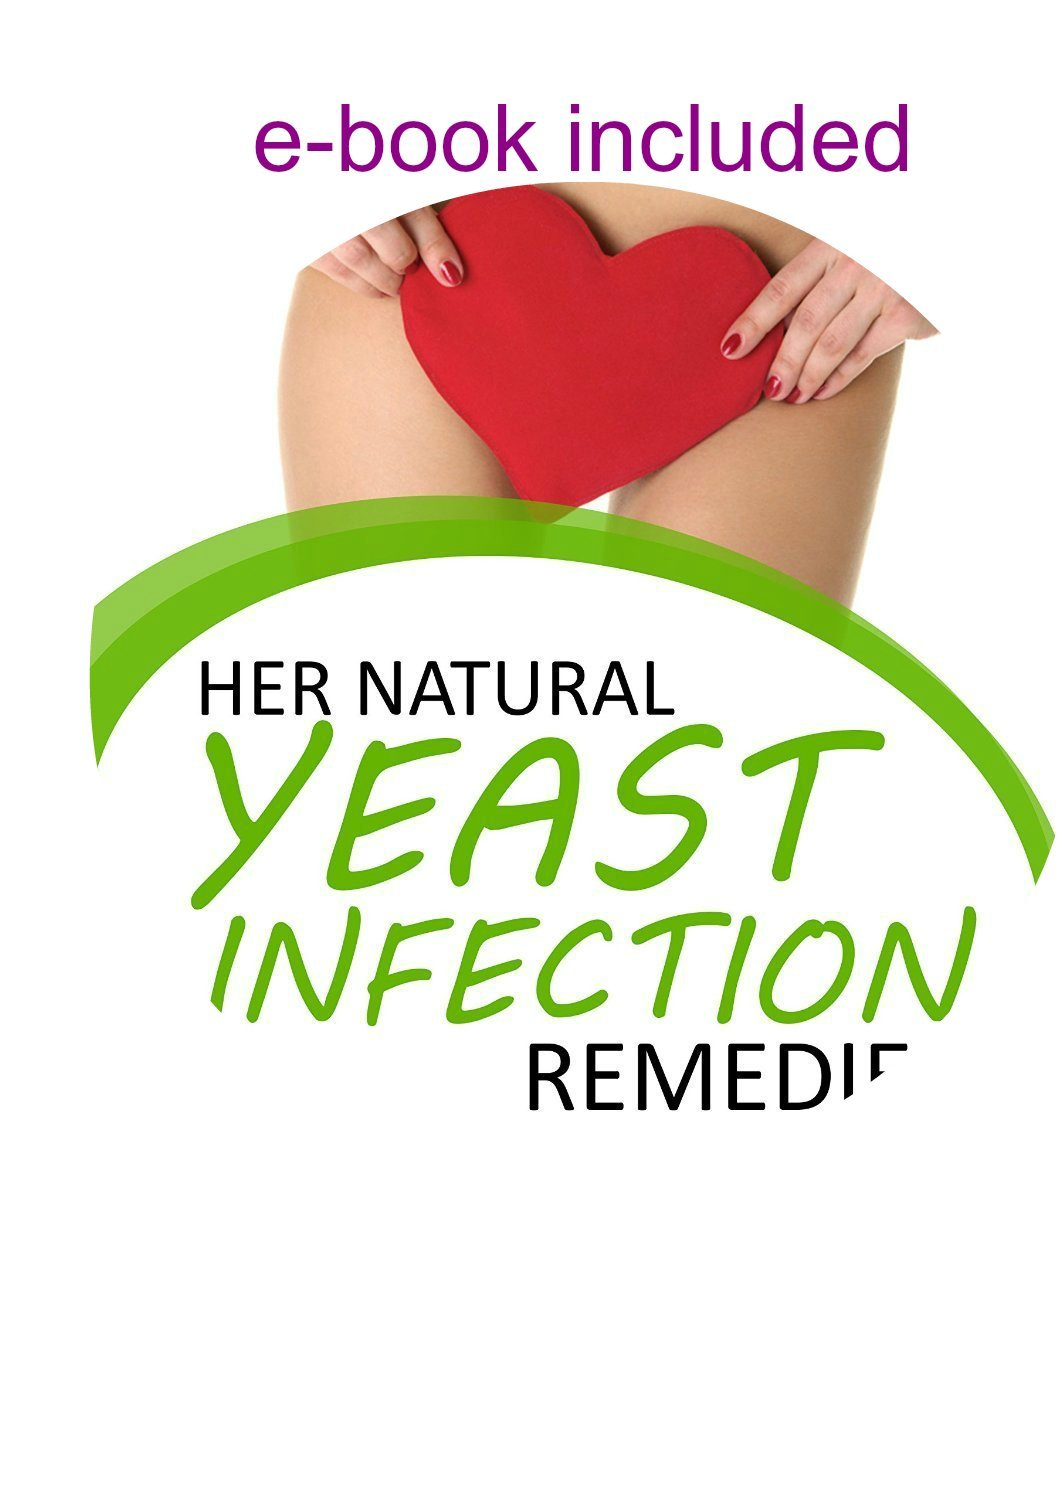 Yeast Infection Treatment Pill | #1 Gynecologist Recommended - Two Ingredients Needed for a Woman's Body - Get to the Core of Infections - Natural Health Bonus Ebook